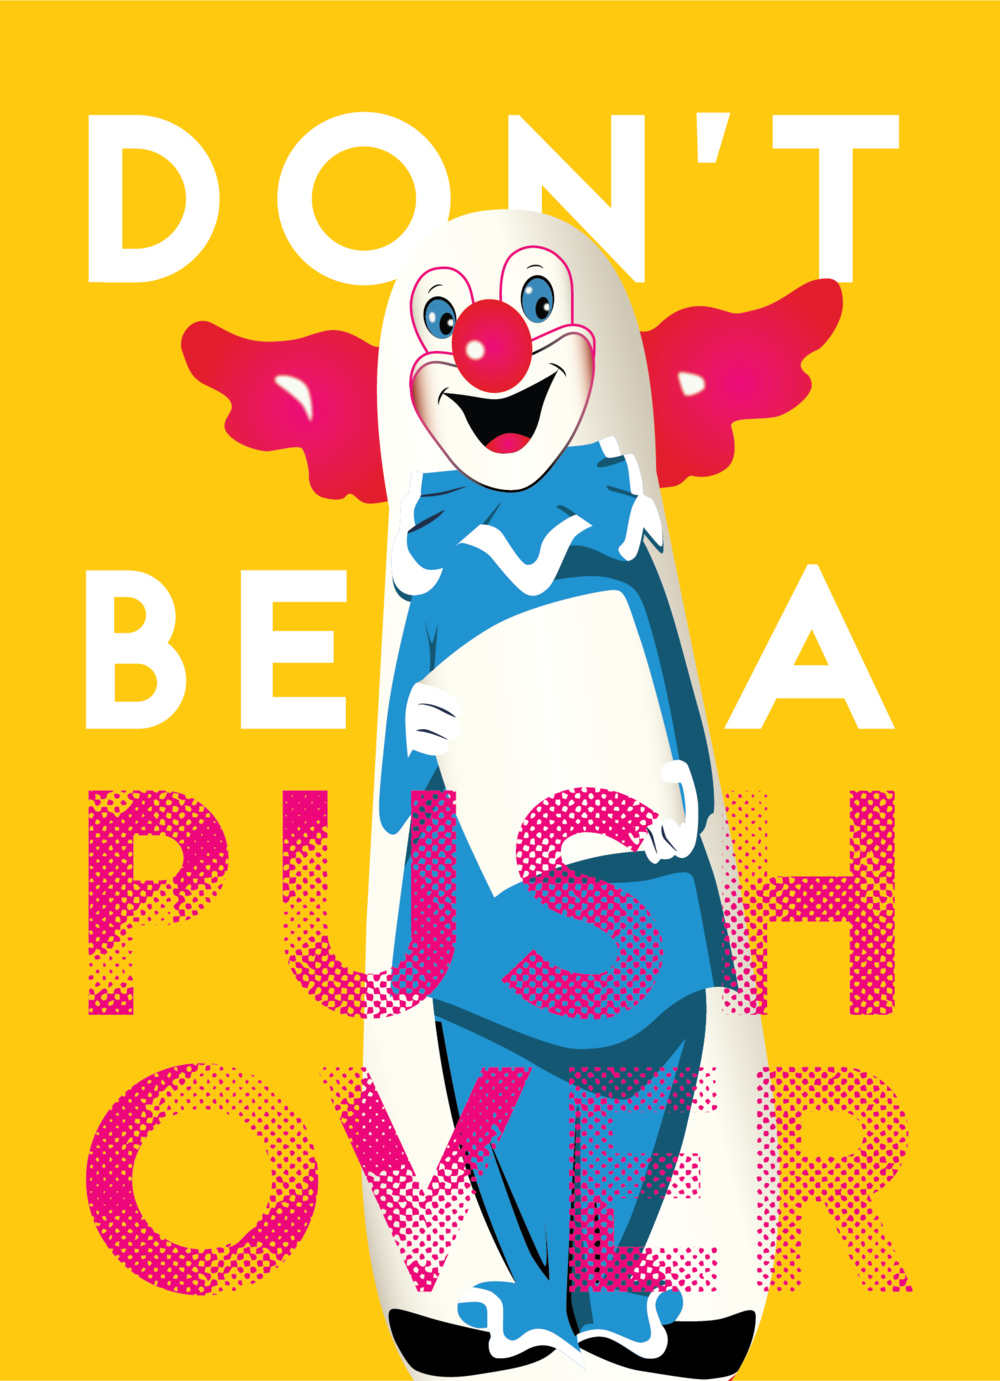 Don't Be a Pushover AIGA Card-01.png